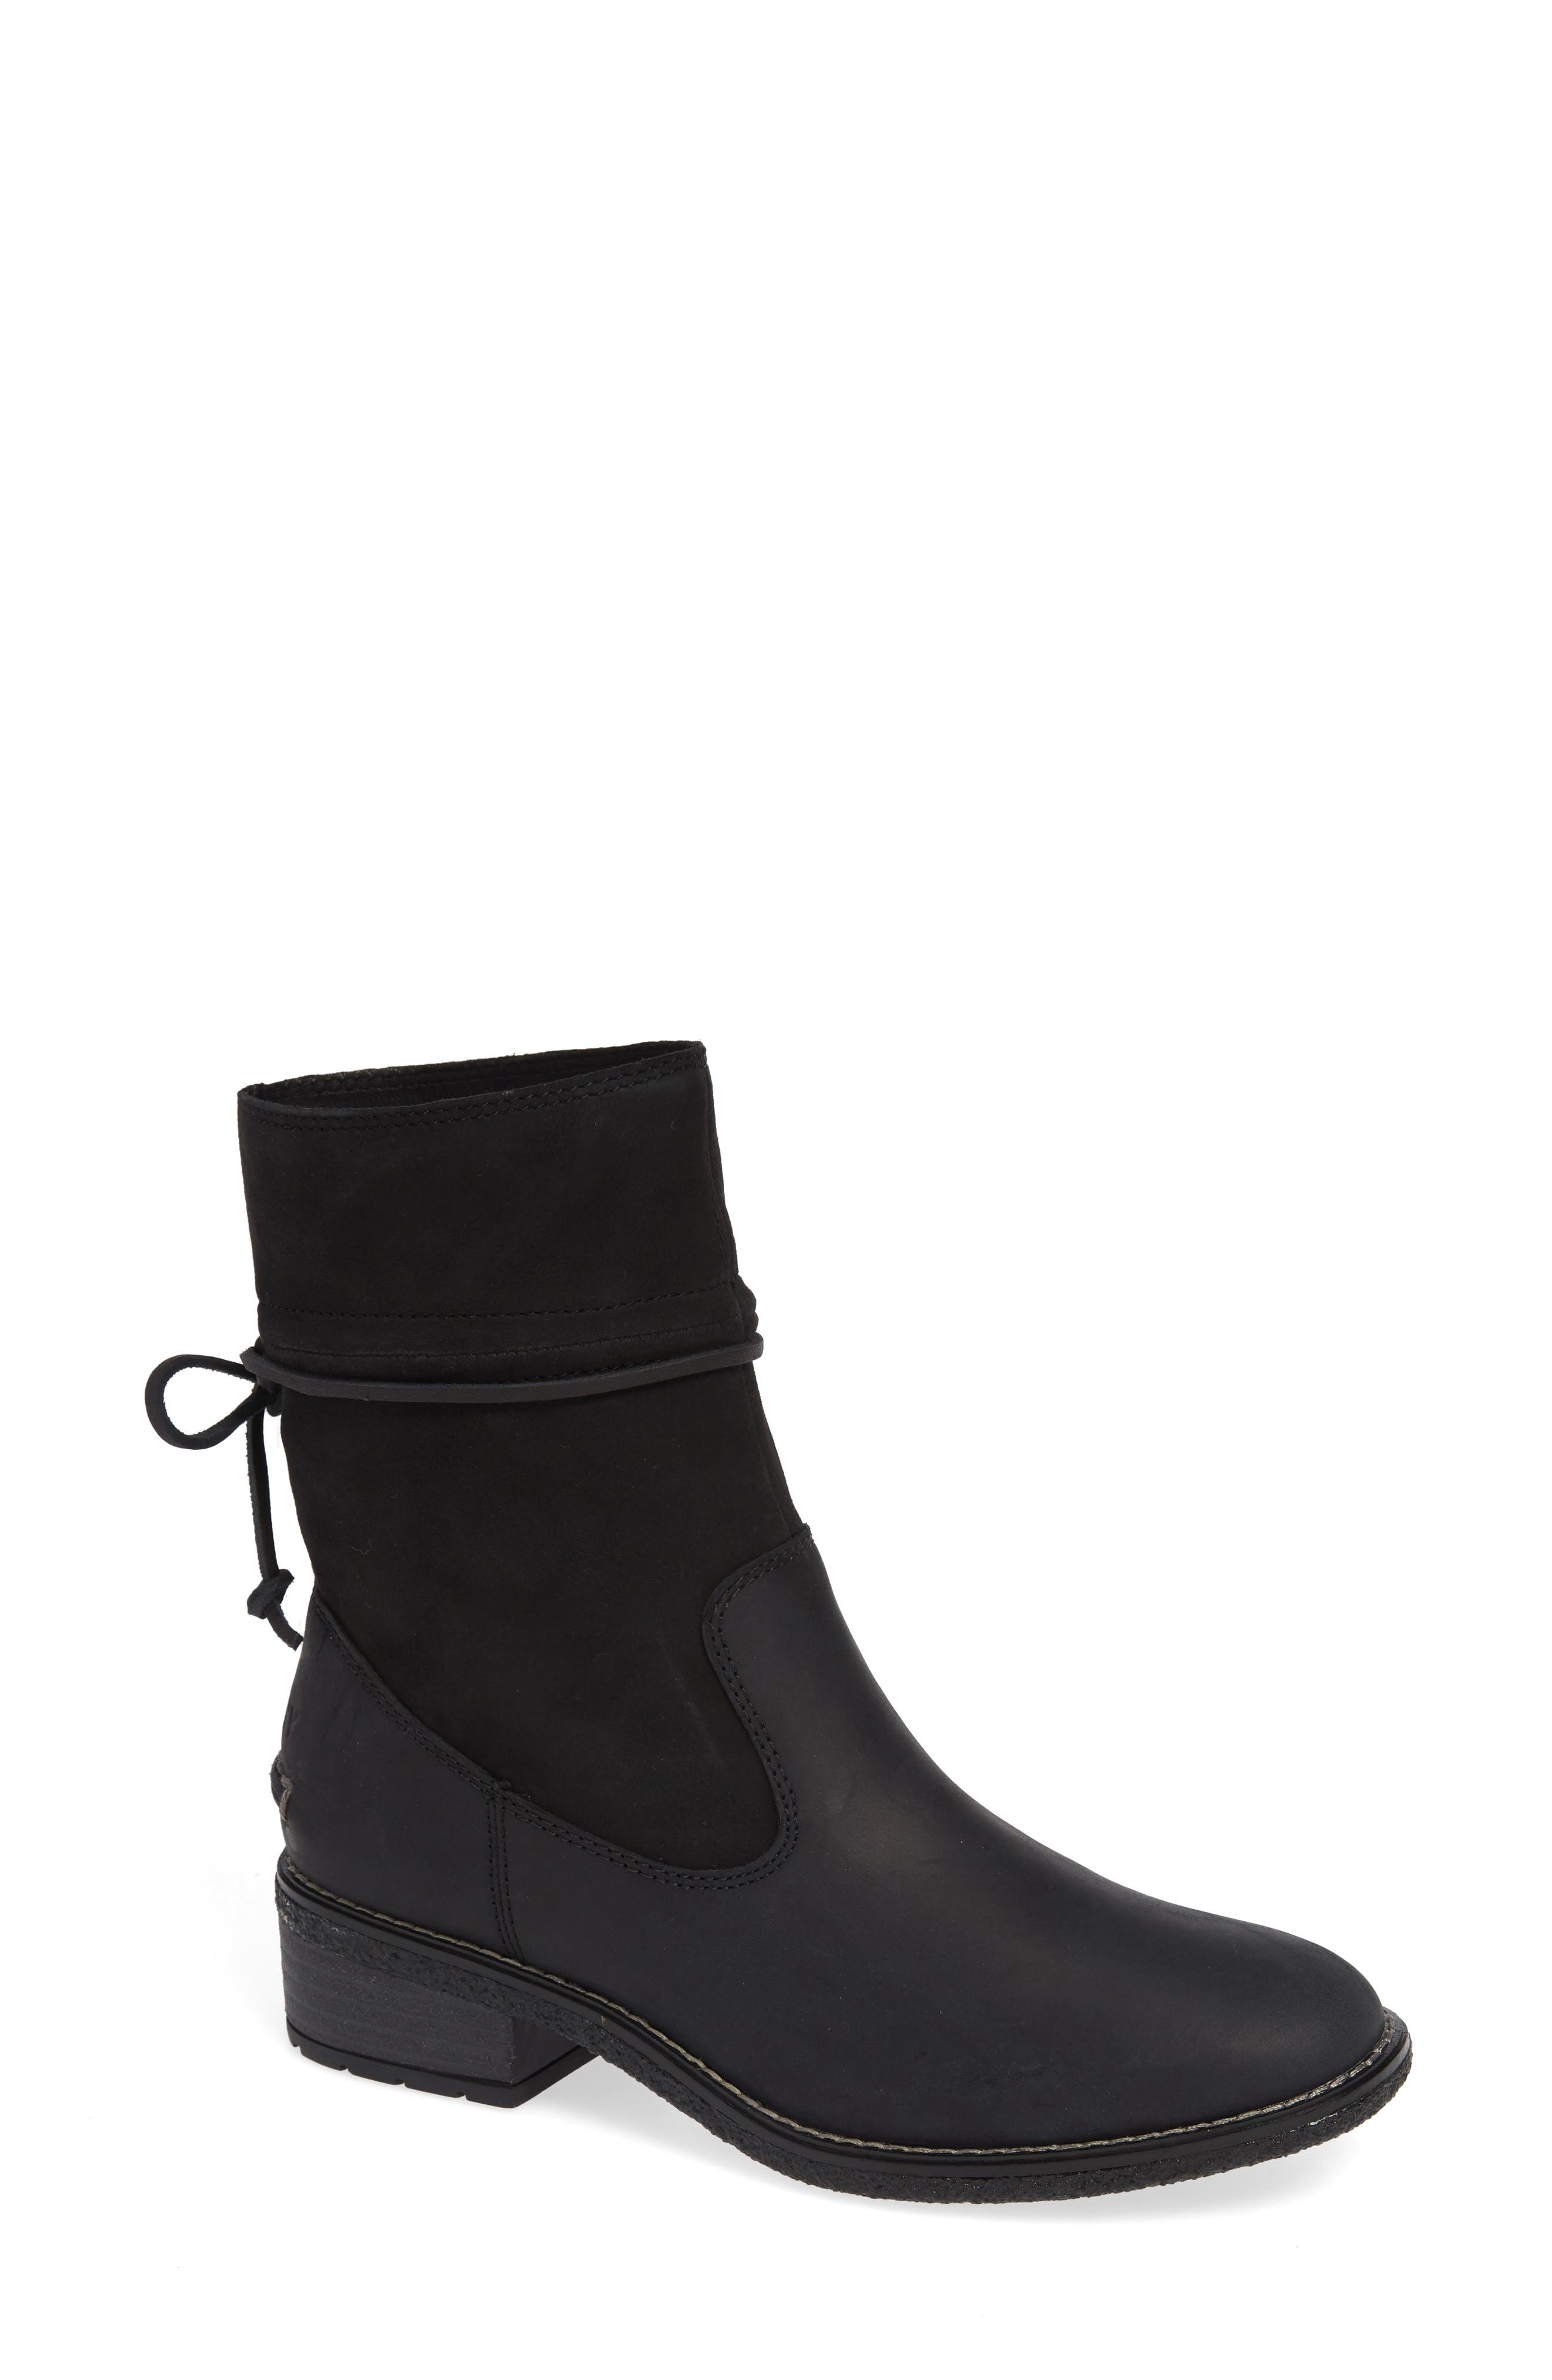 Maya Ronan Bootie,                             Main thumbnail 1, color,                             BLACK SUEDE/ LEATHER